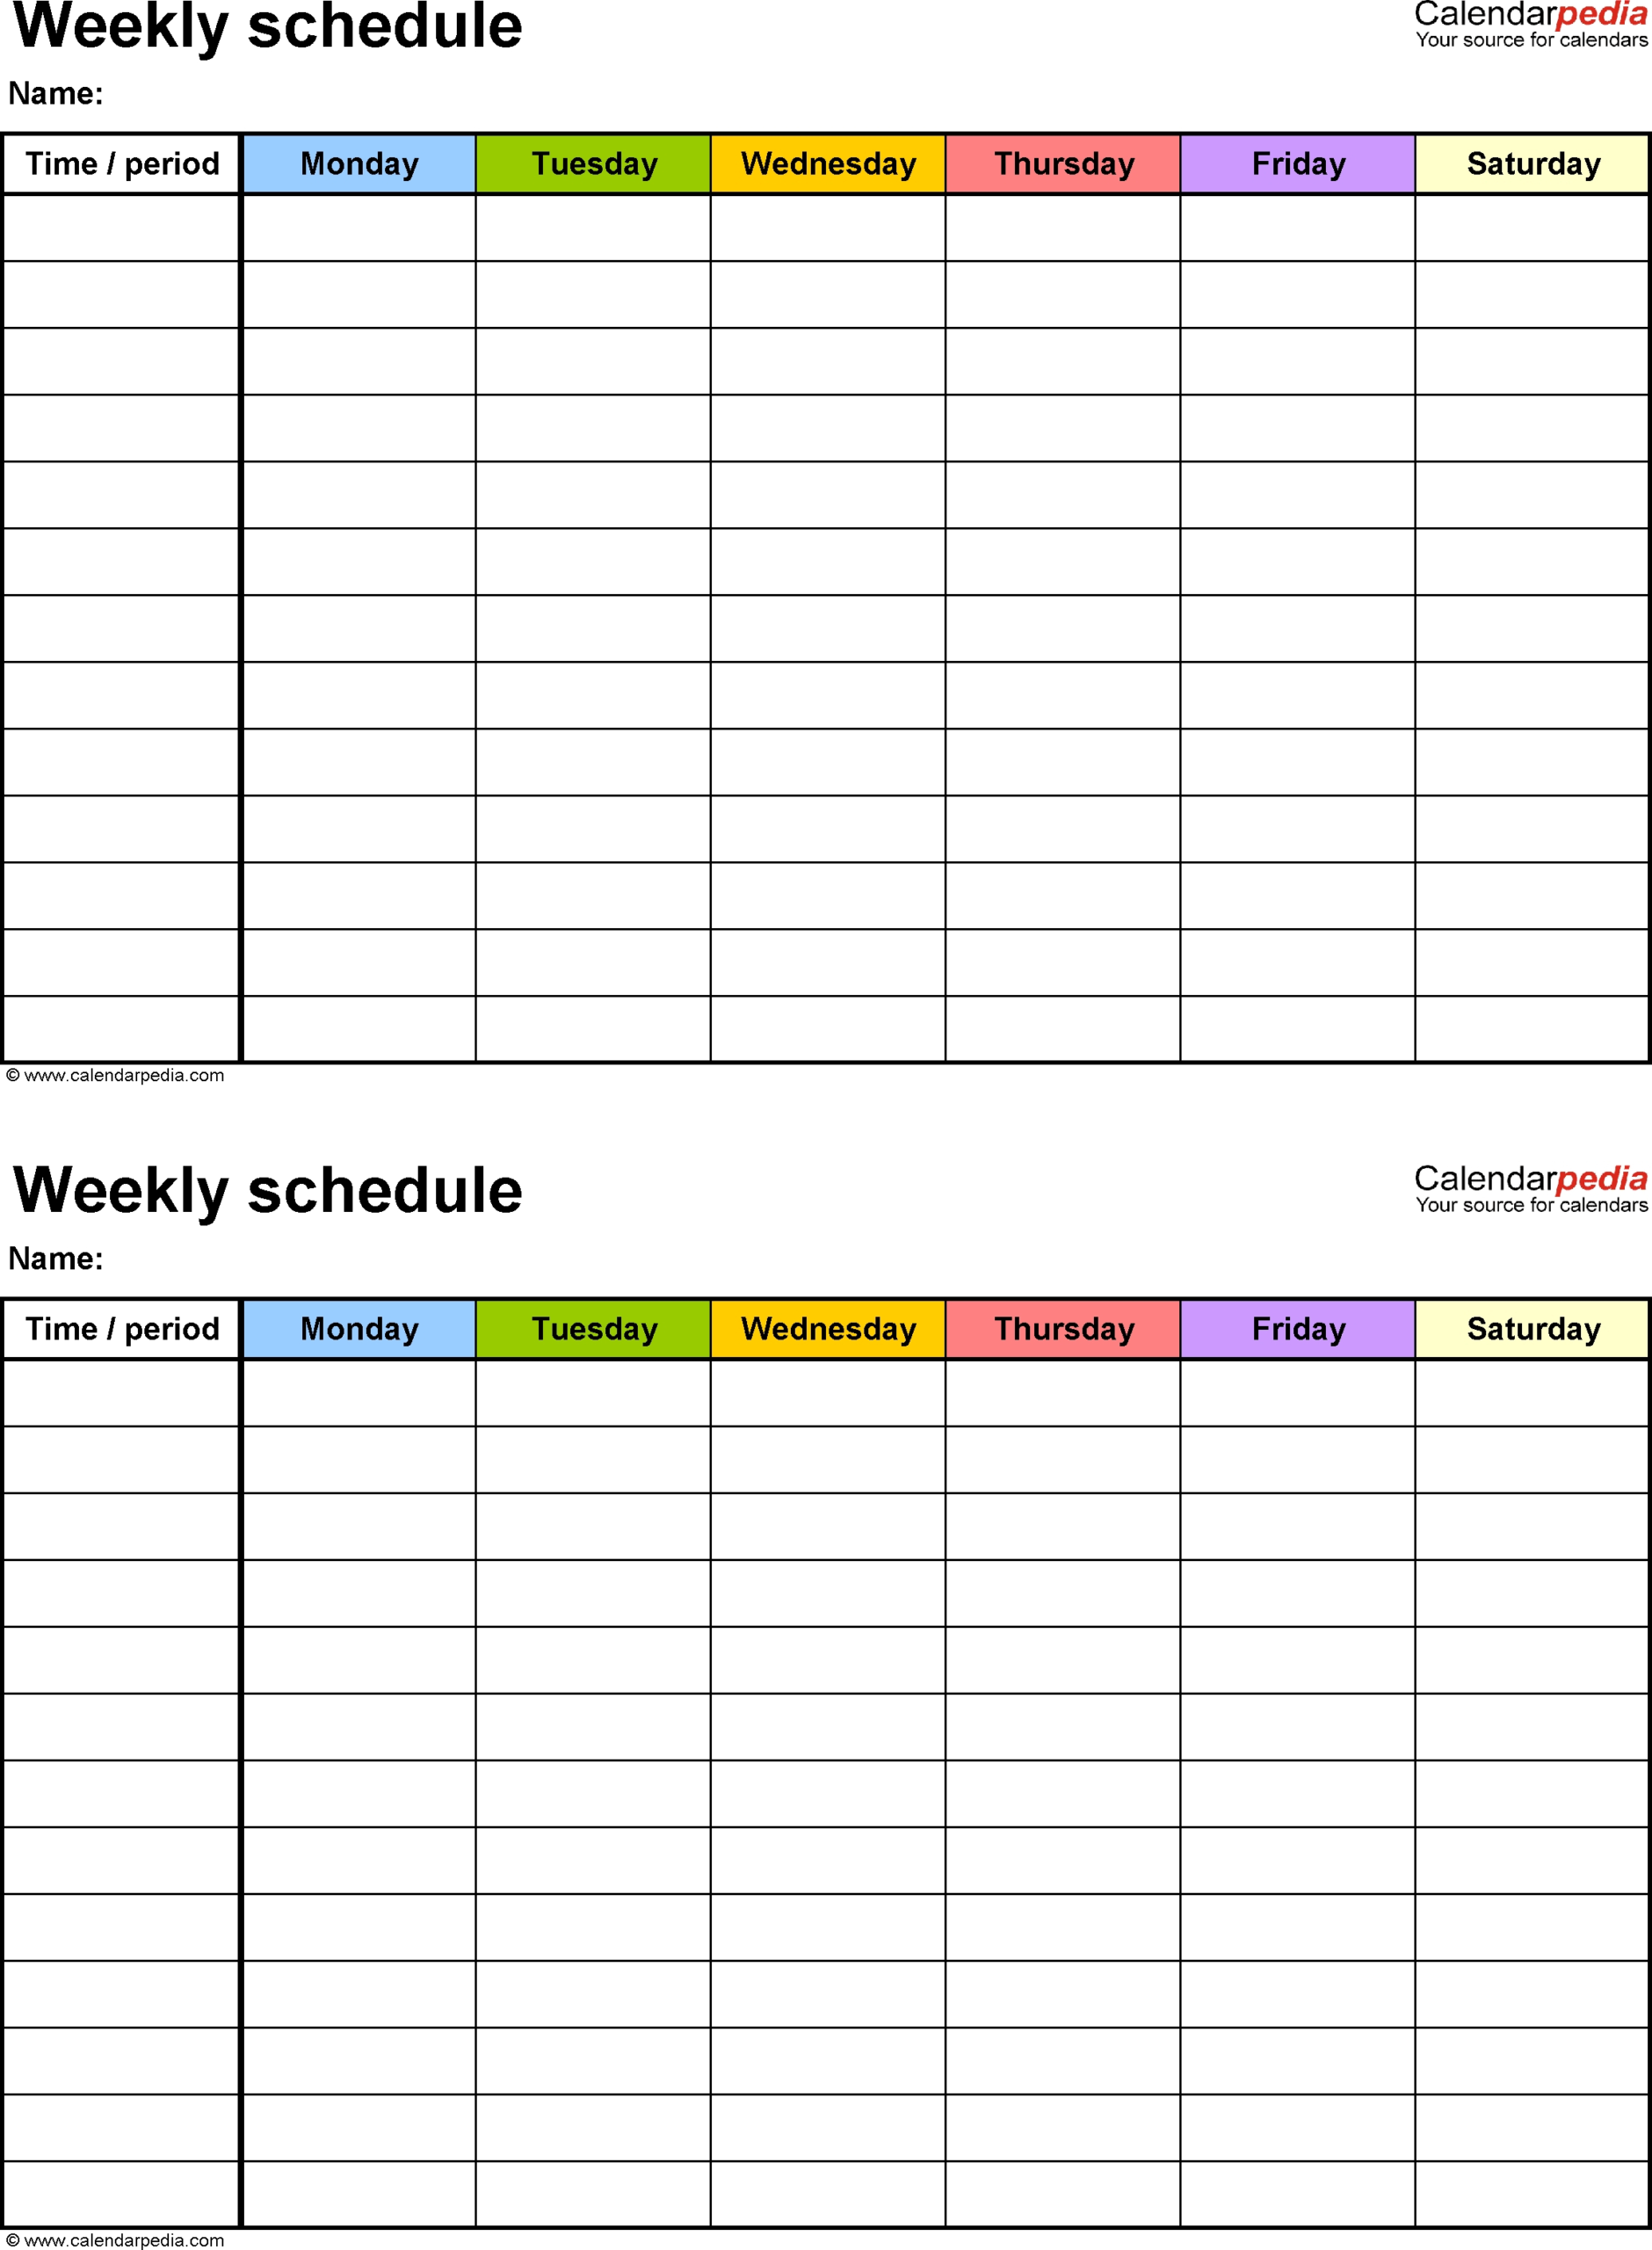 5 Day Weekly Timetable Blank 6 Periods - Calendar